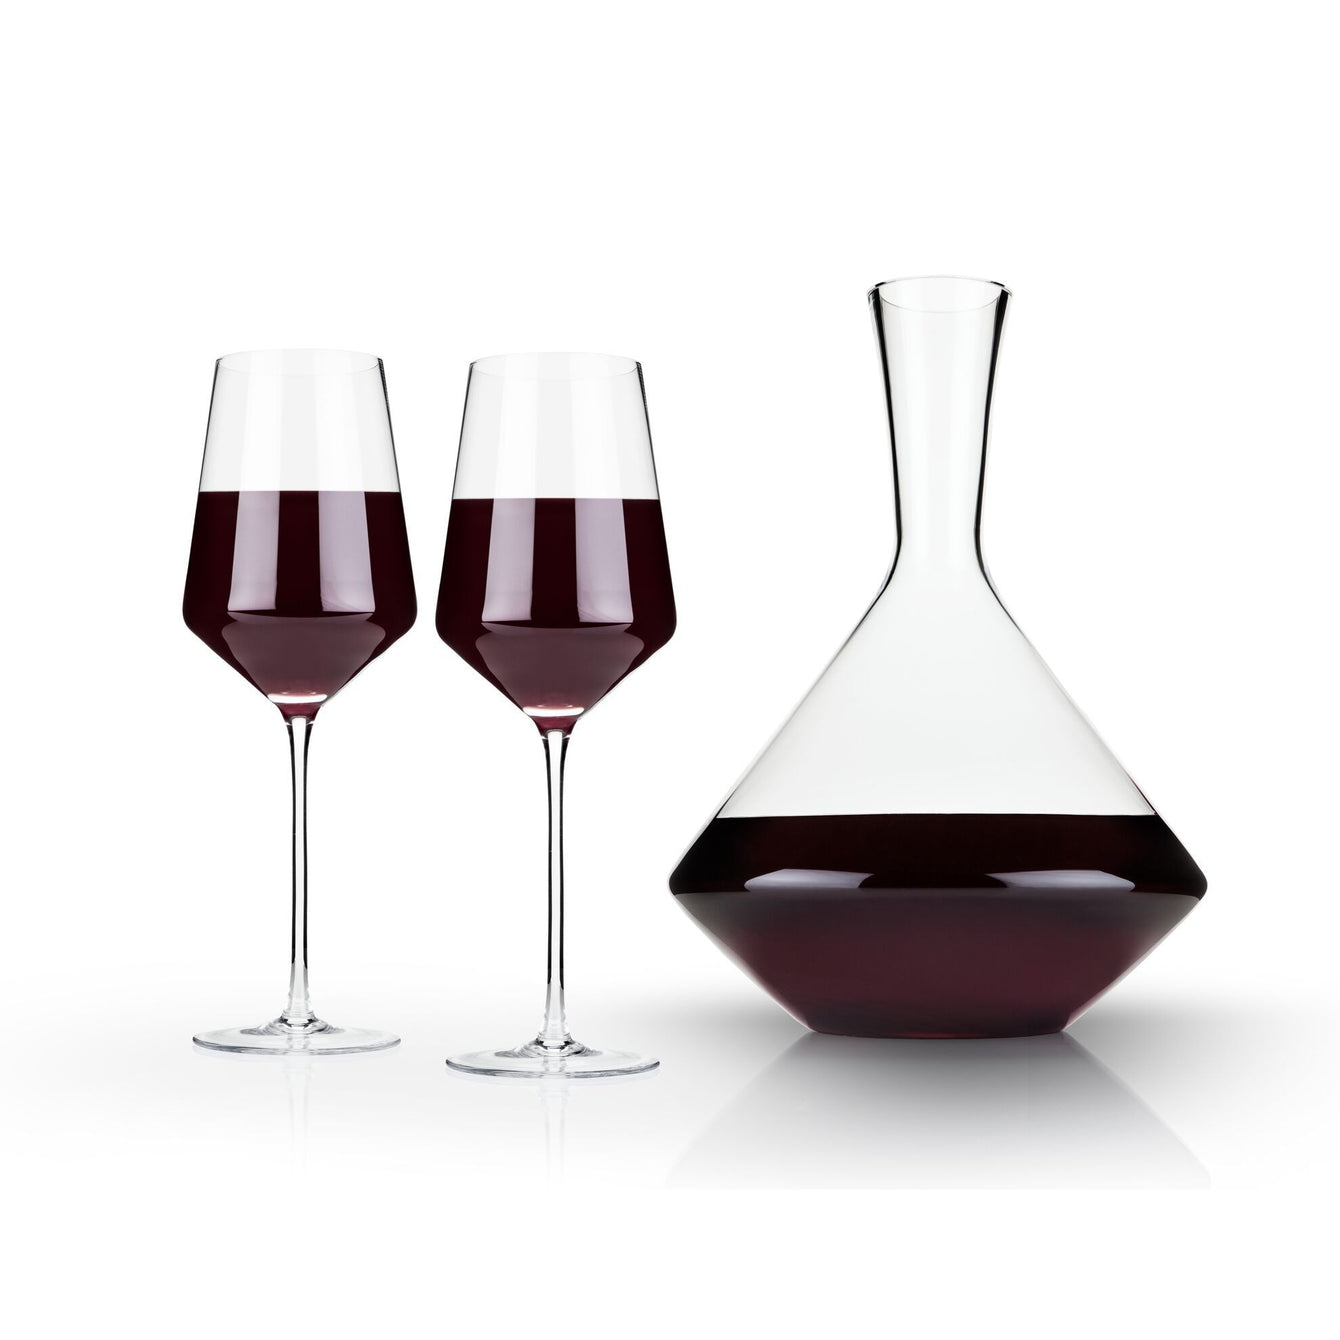 Raye Crystal Bordeaux Wine Gift Set of 3-Home - Entertaining - Wine Glasses Sets-VISKI-Peccadilly